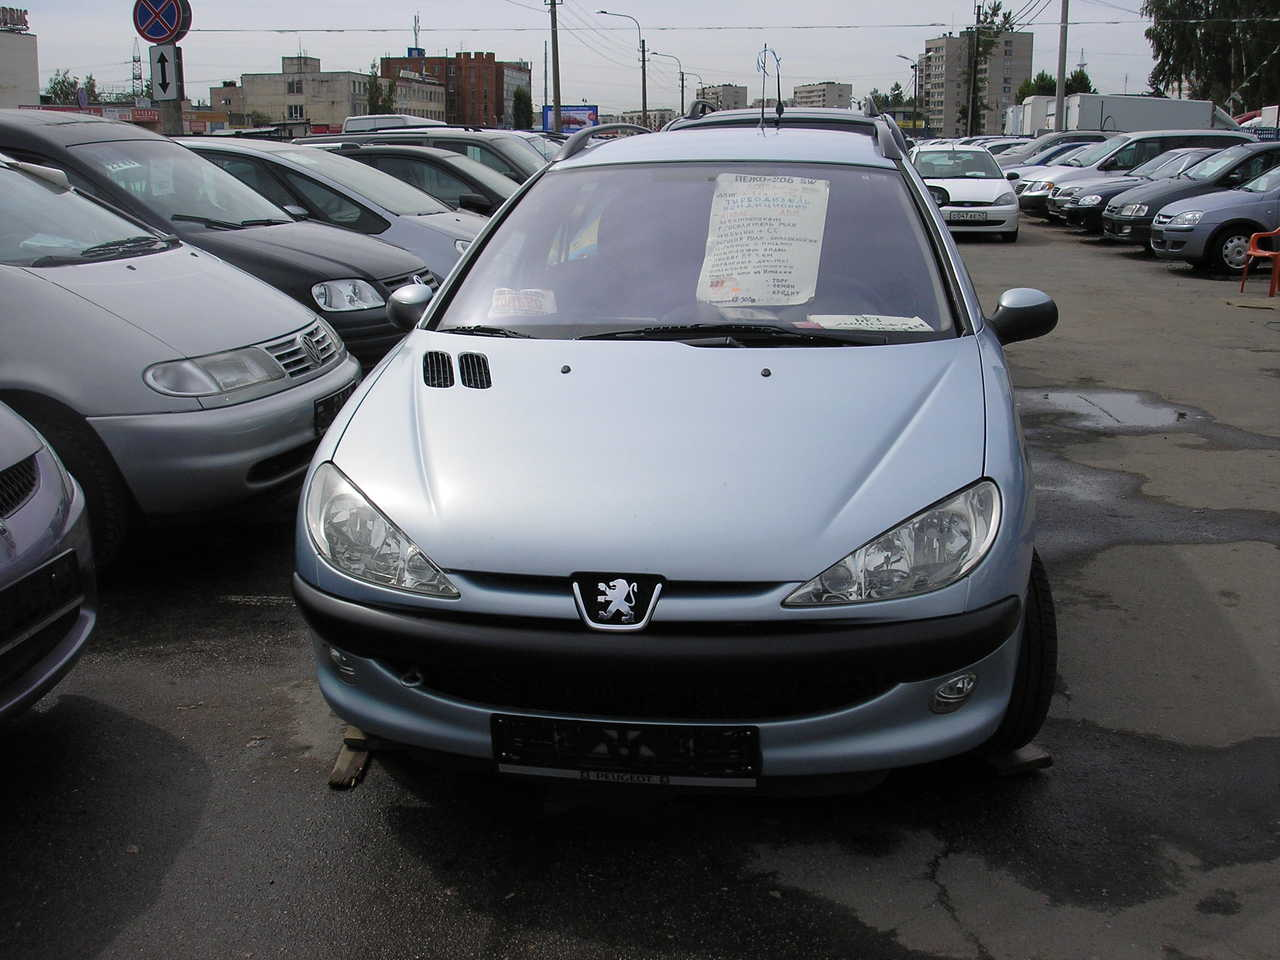 Used 2005 Peugeot 206 Photos, 1400cc., sel, FF For Sale